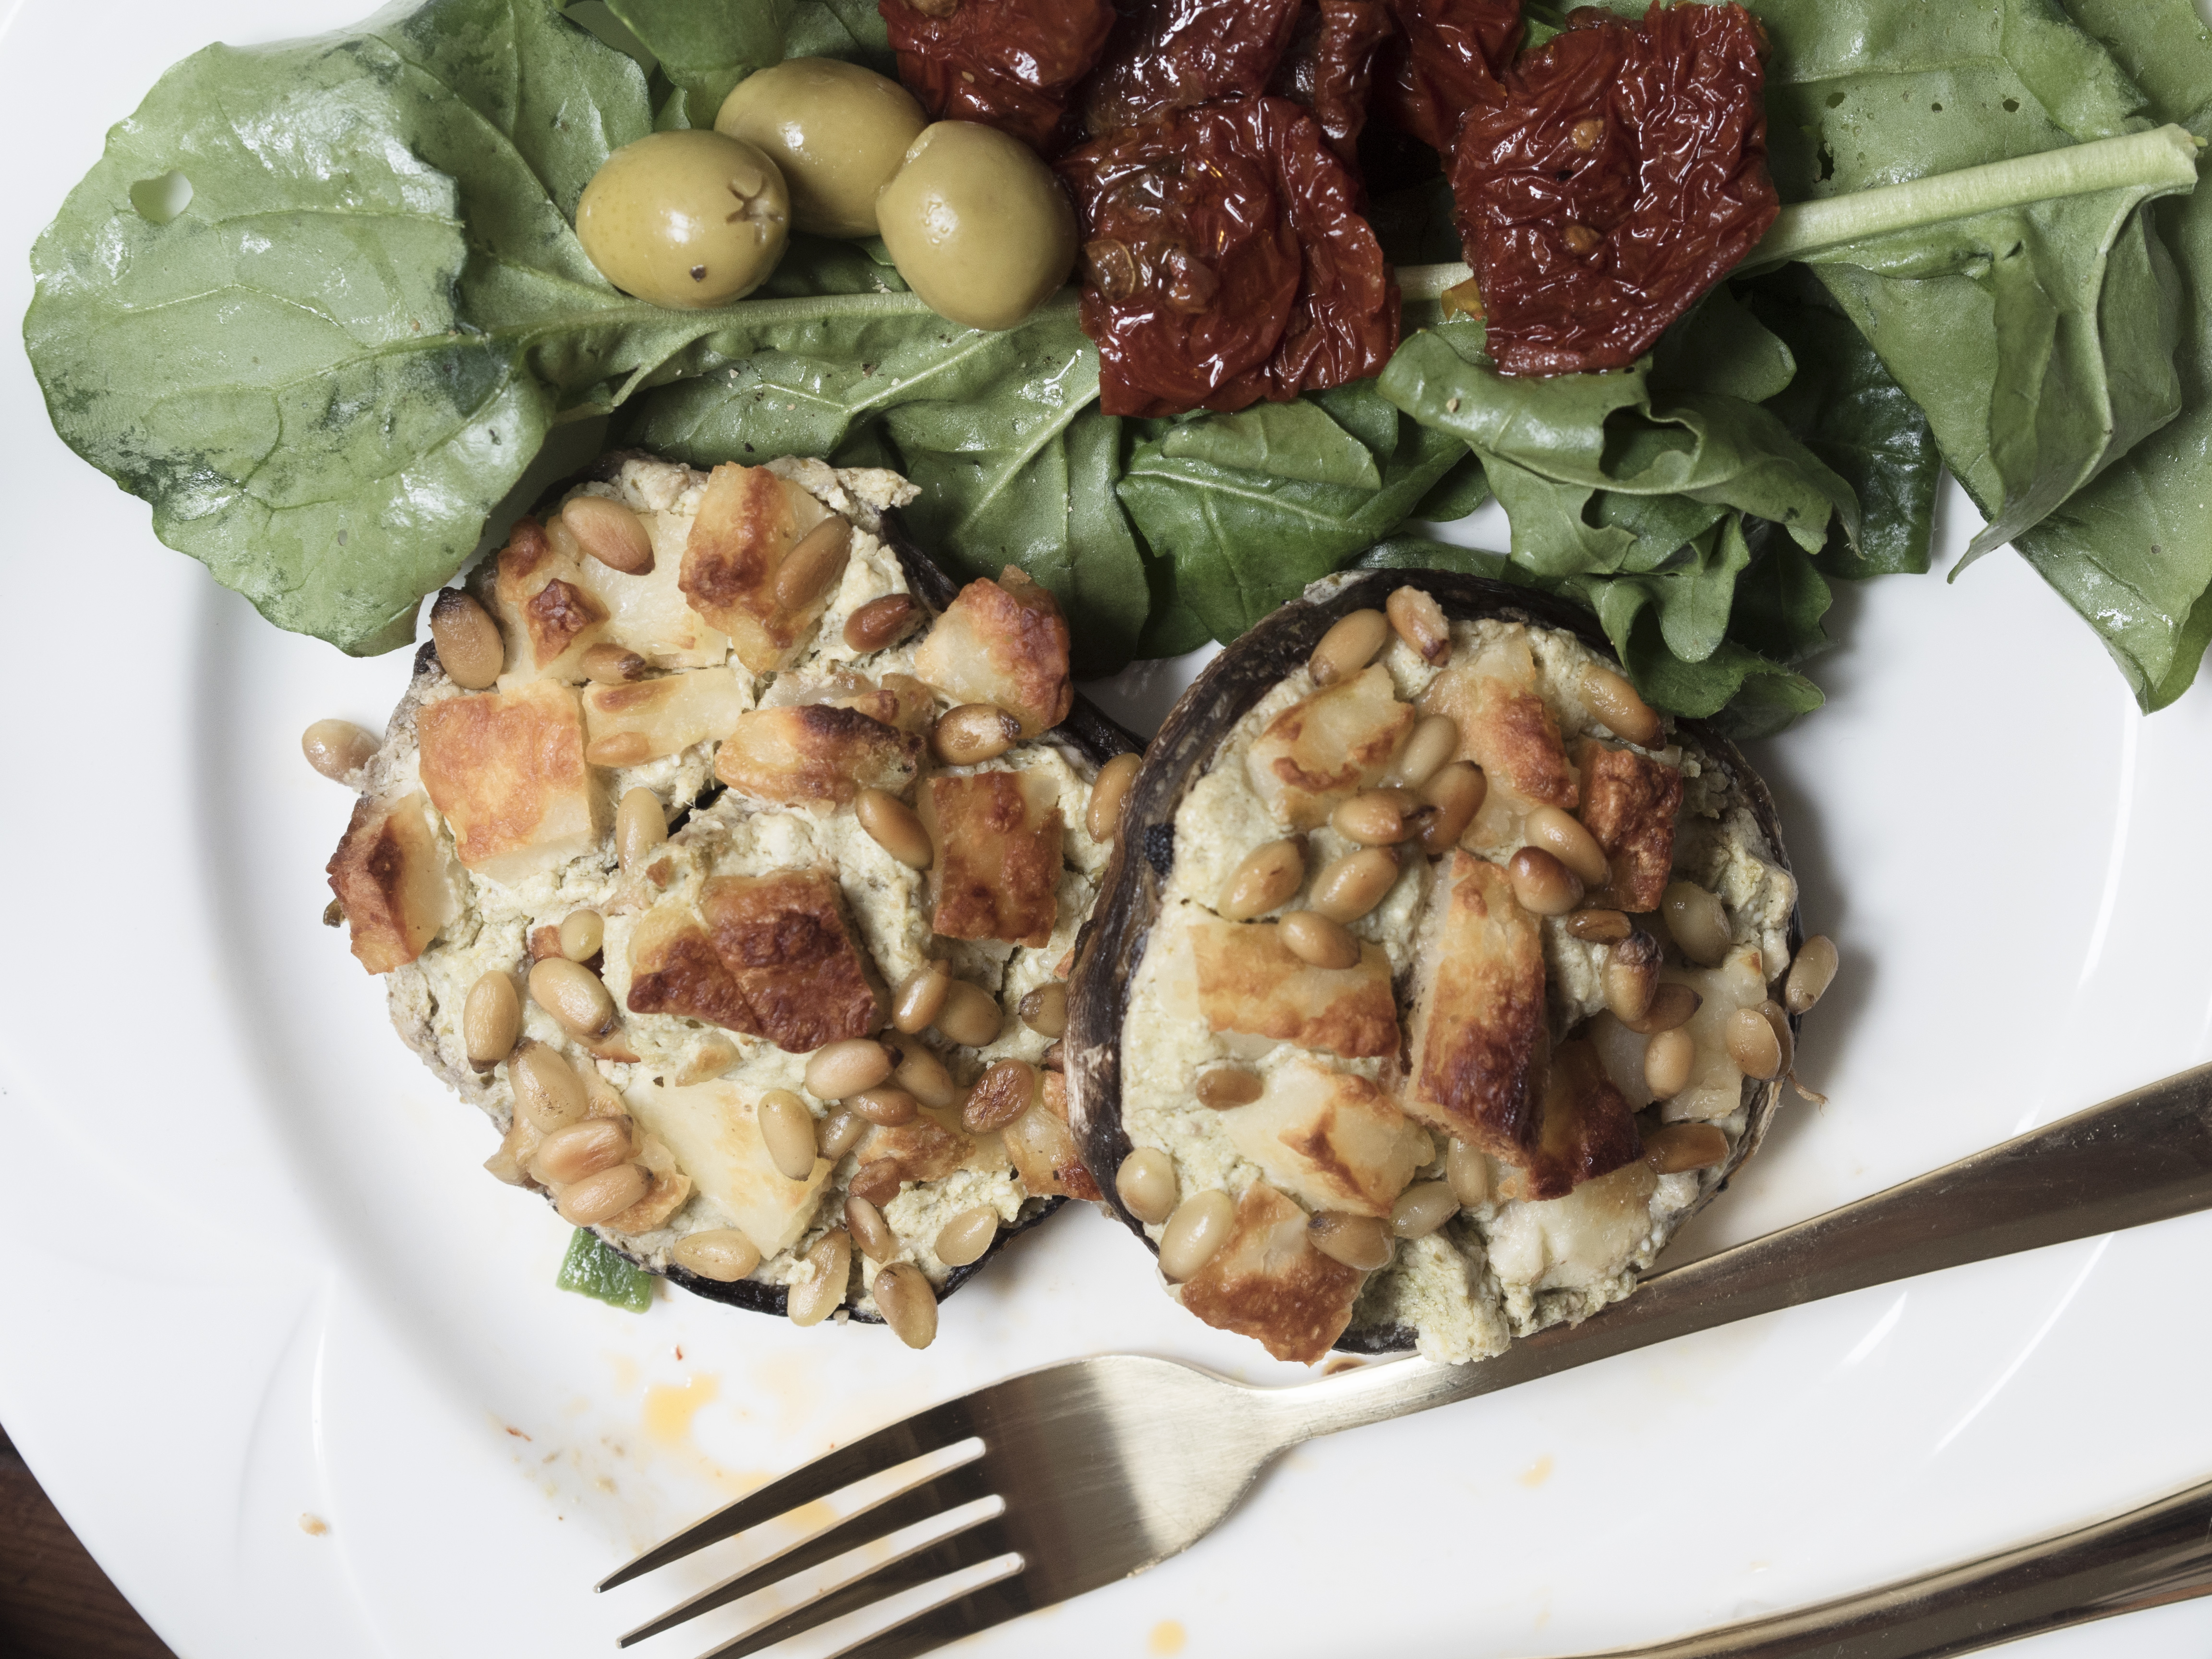 Stuffed mushroom with courgette